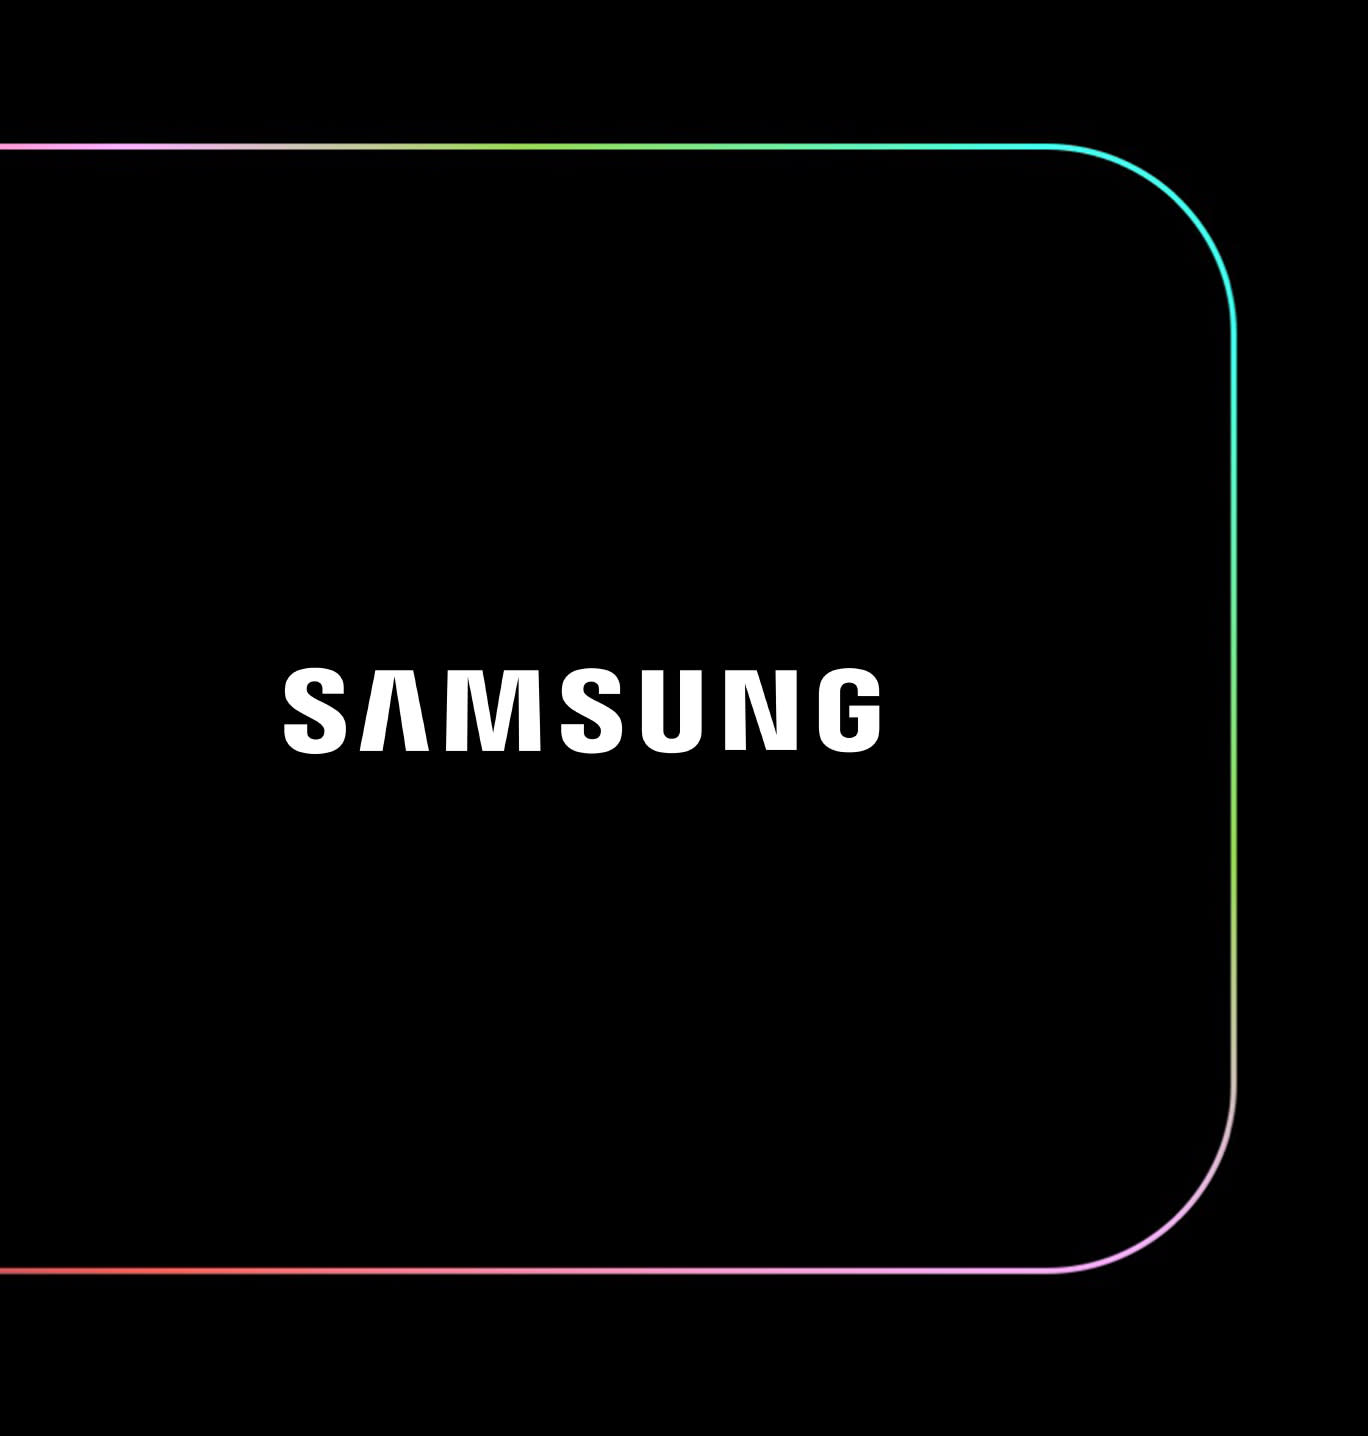 Samsung Home Entertainment Pitch Deck